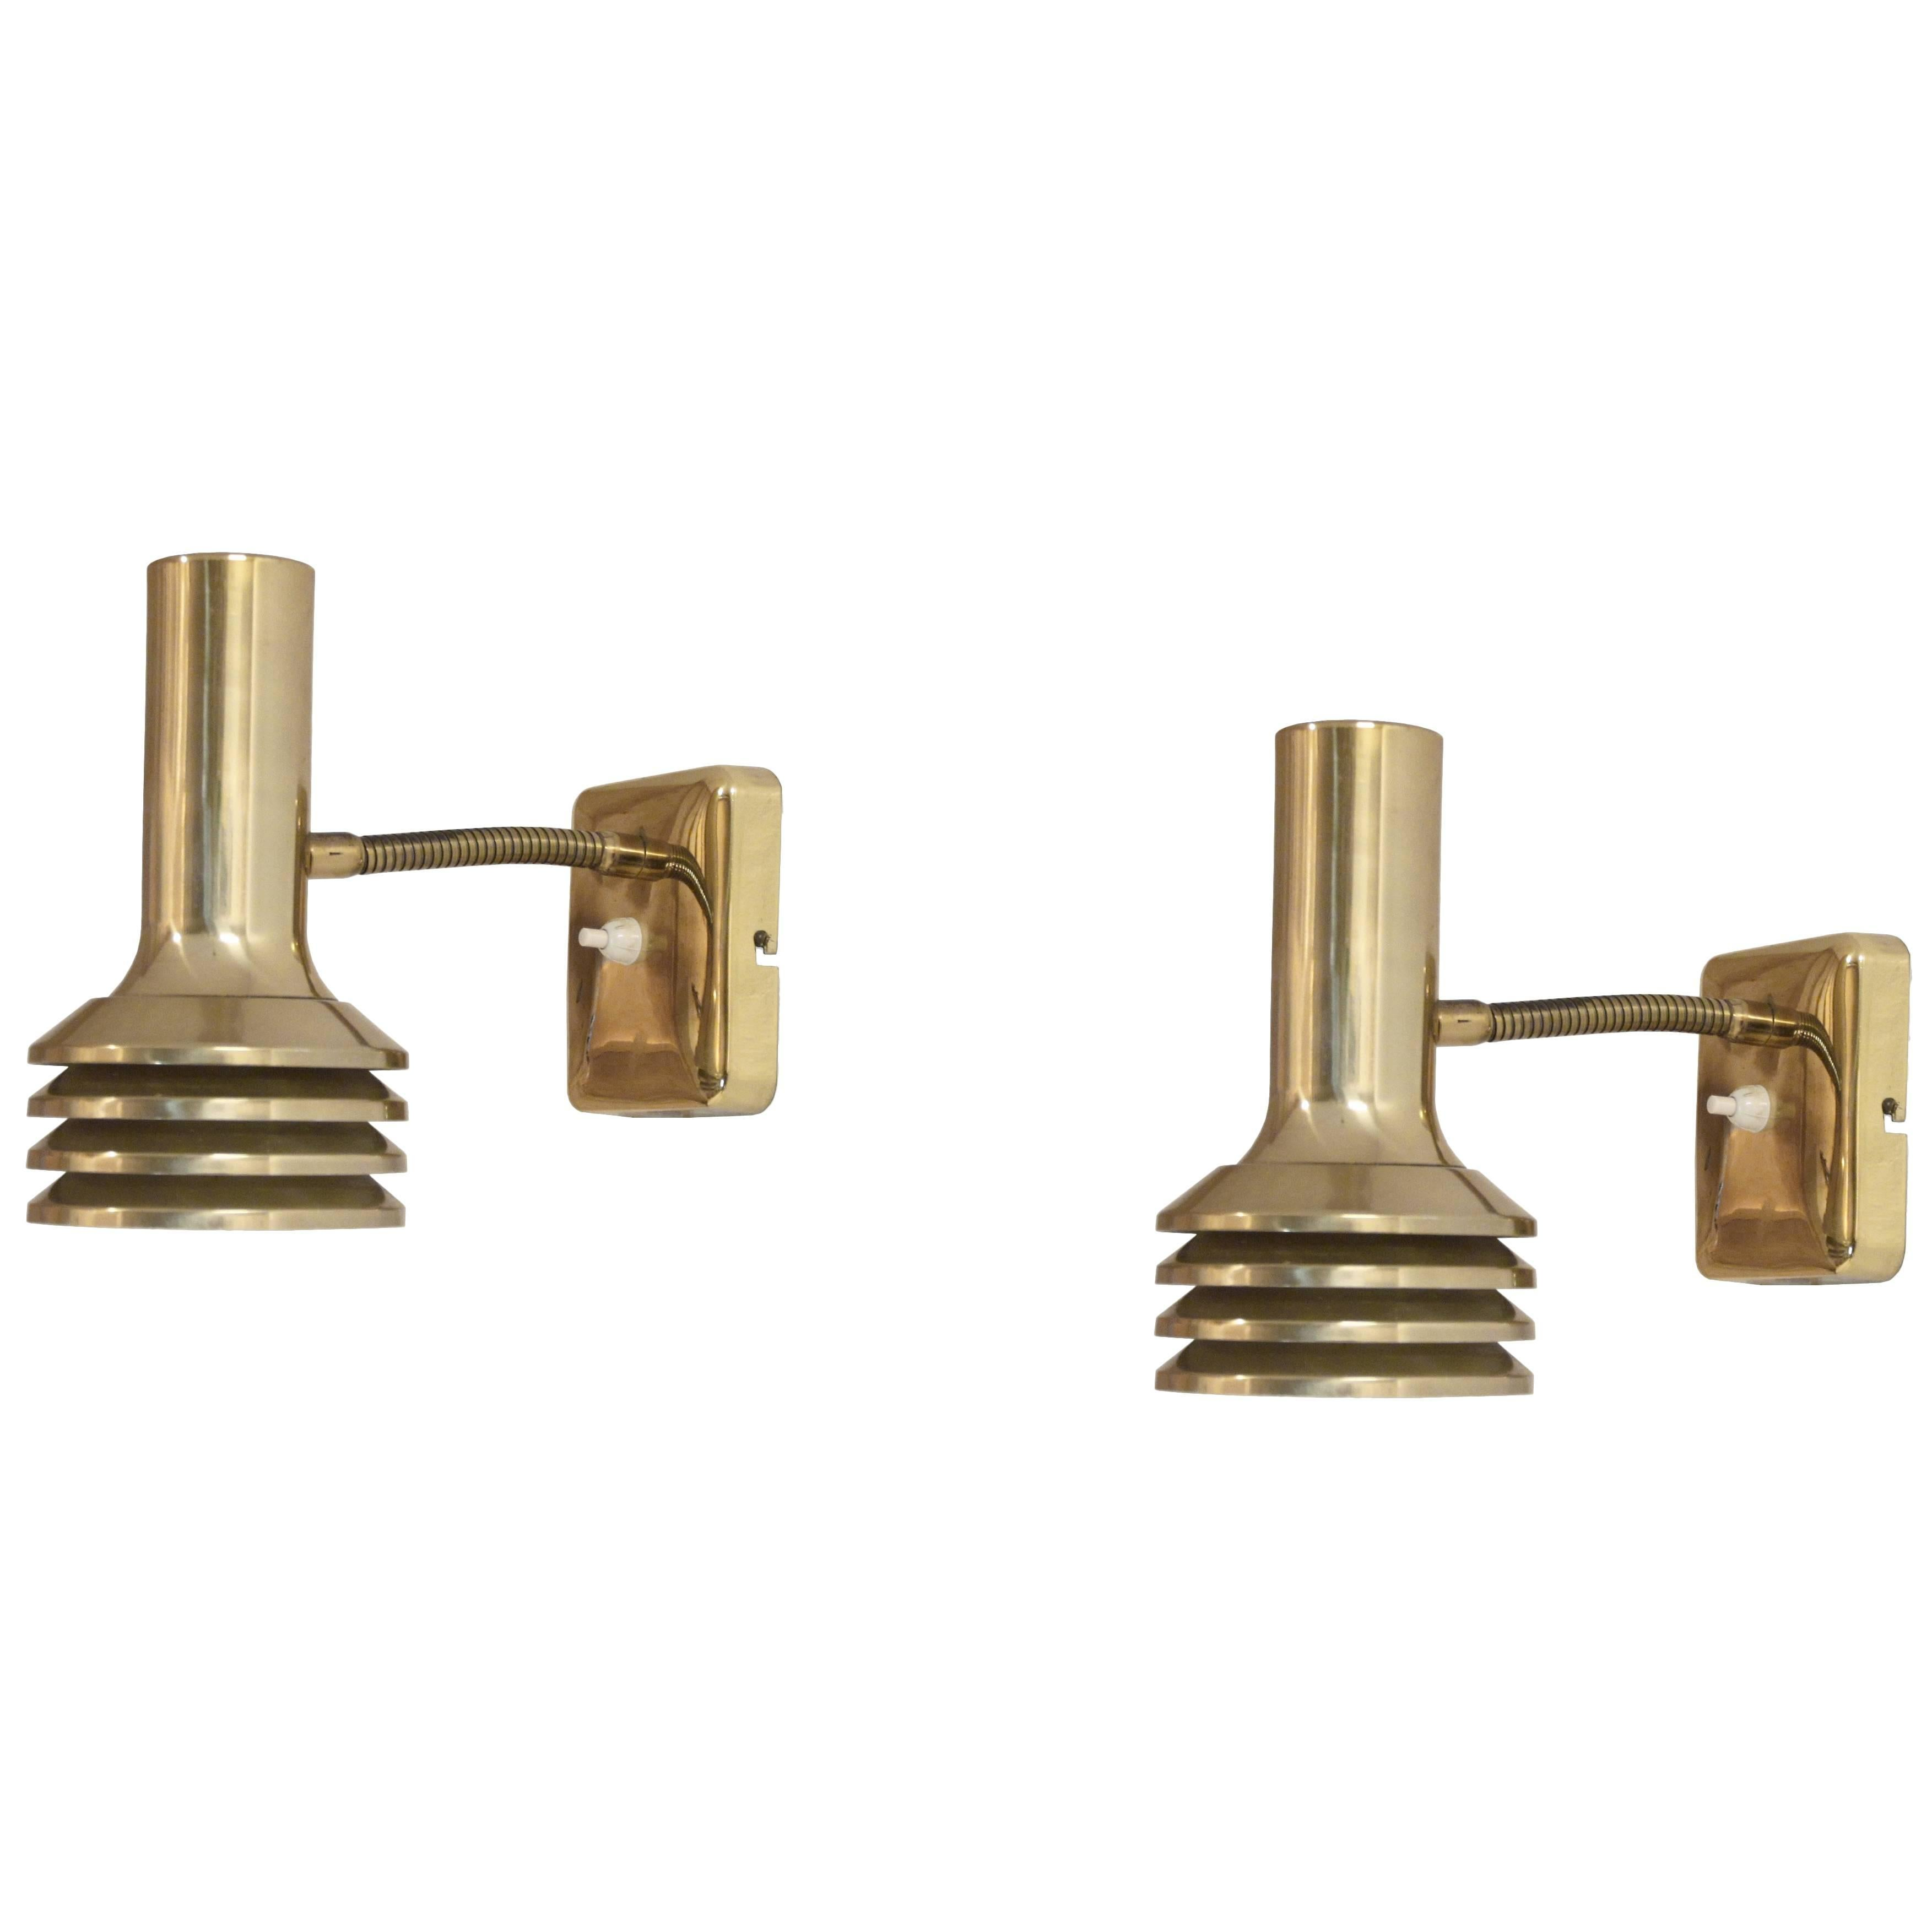 Pair of Wall Lights in Brass by Bison, Norway, 1960s